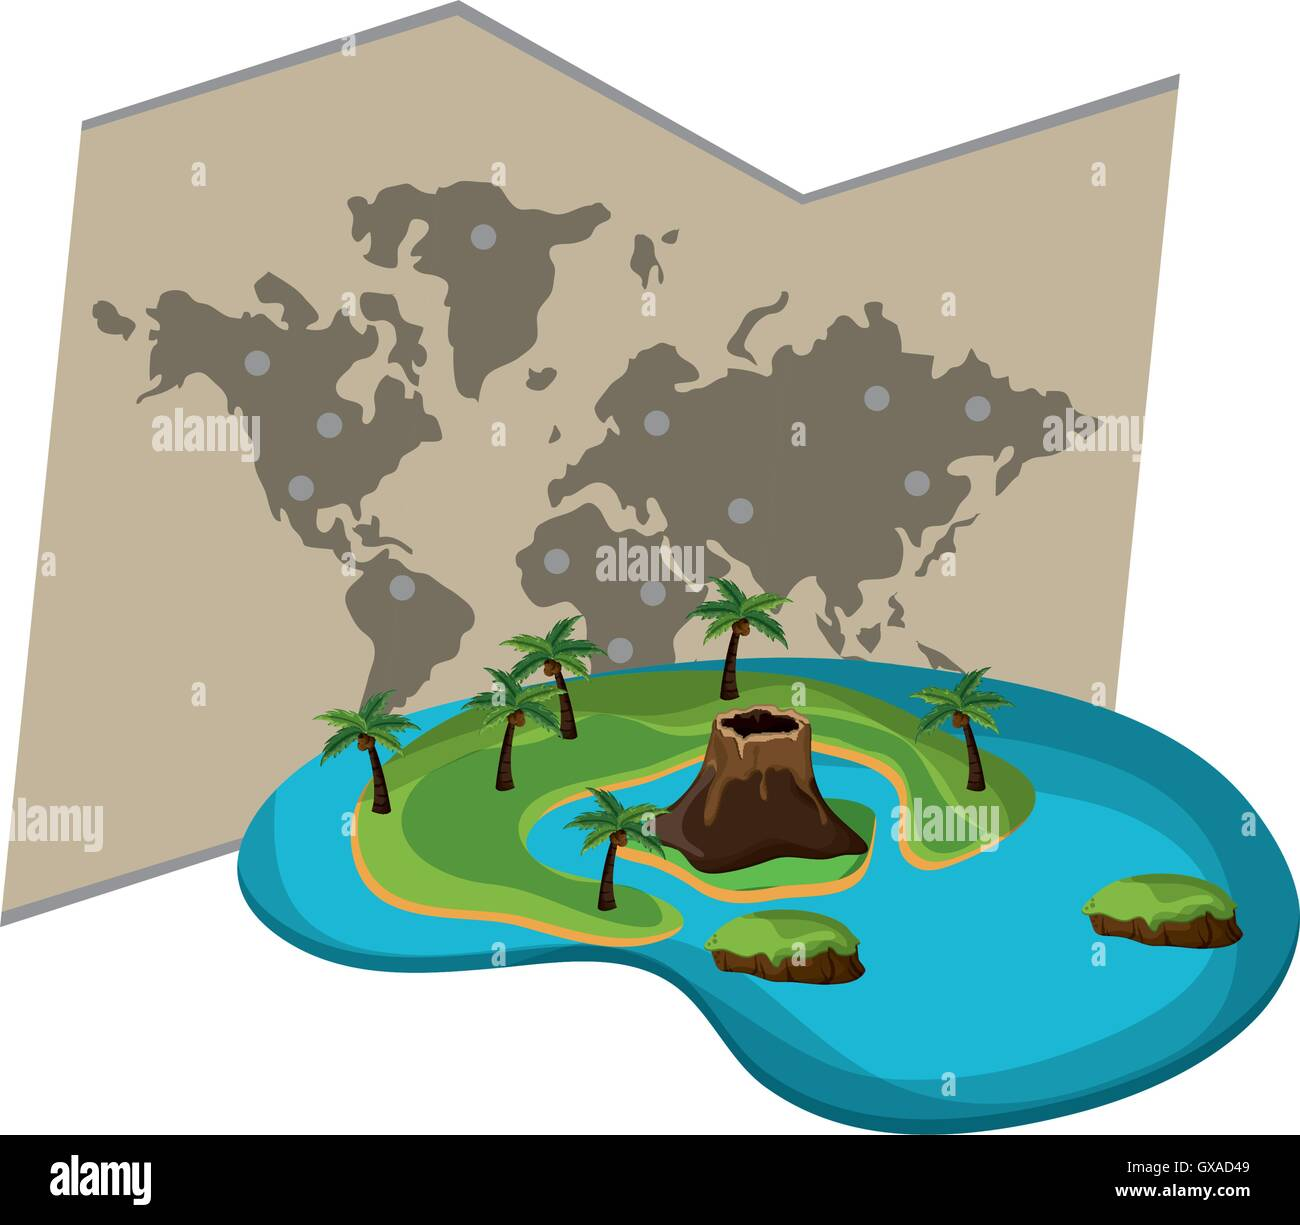 world map and tropical island icon Stock Vector Art ... on palm island map, sea island map, large island map, orange island map, fruit island map, tropical home, strawberry island map, peter island map, hawaiian islands map, sand island map, tropical islands germany, rugen island germany map, tropical resorts, caribbean map, tropical islands to visit, water island map, sunset island map, tropical islands around the world, tropical weddings, island nation map,